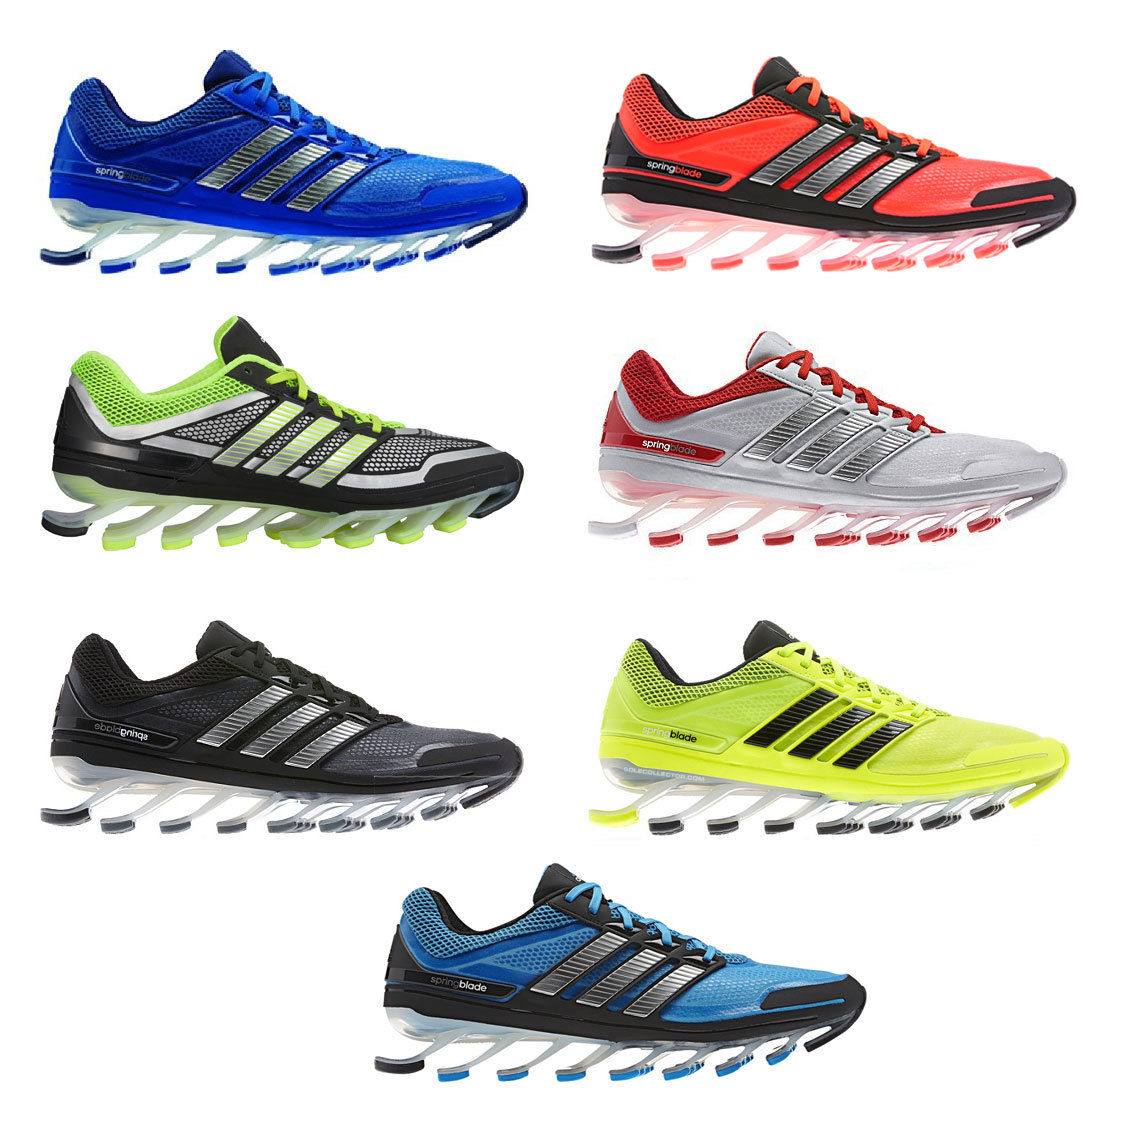 Brand New Men s ADIDAS Springblade Running Trainer Sneaker Shoes -All  Colors and Sizes 2b752077c1